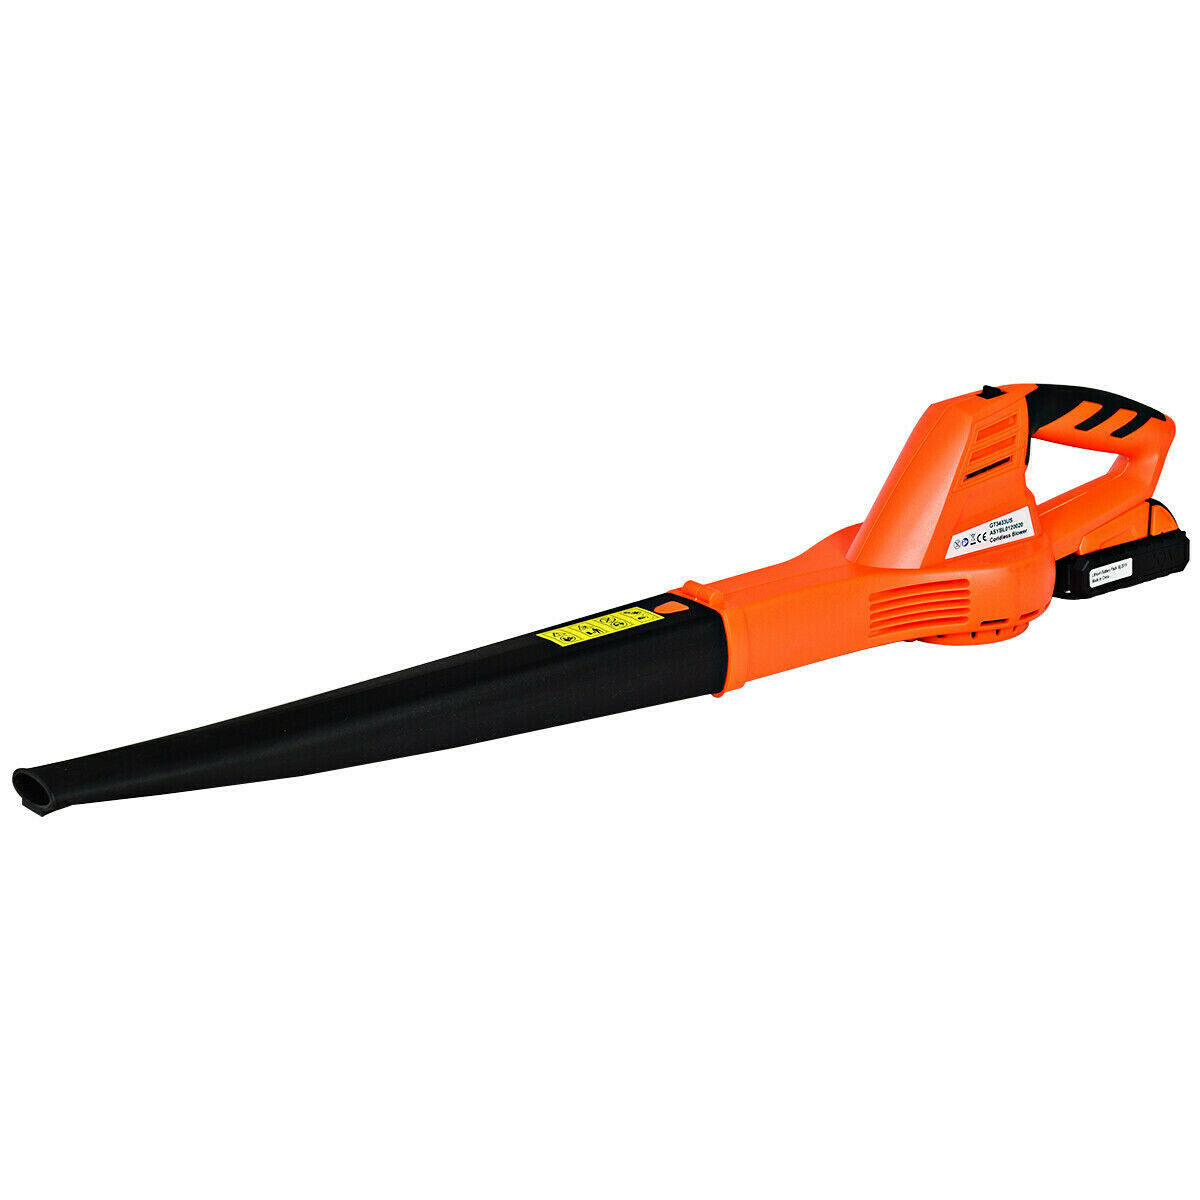 Cordless Leaf Blower Sweeper with 120 MPH Blower with Battery and Charger Orange